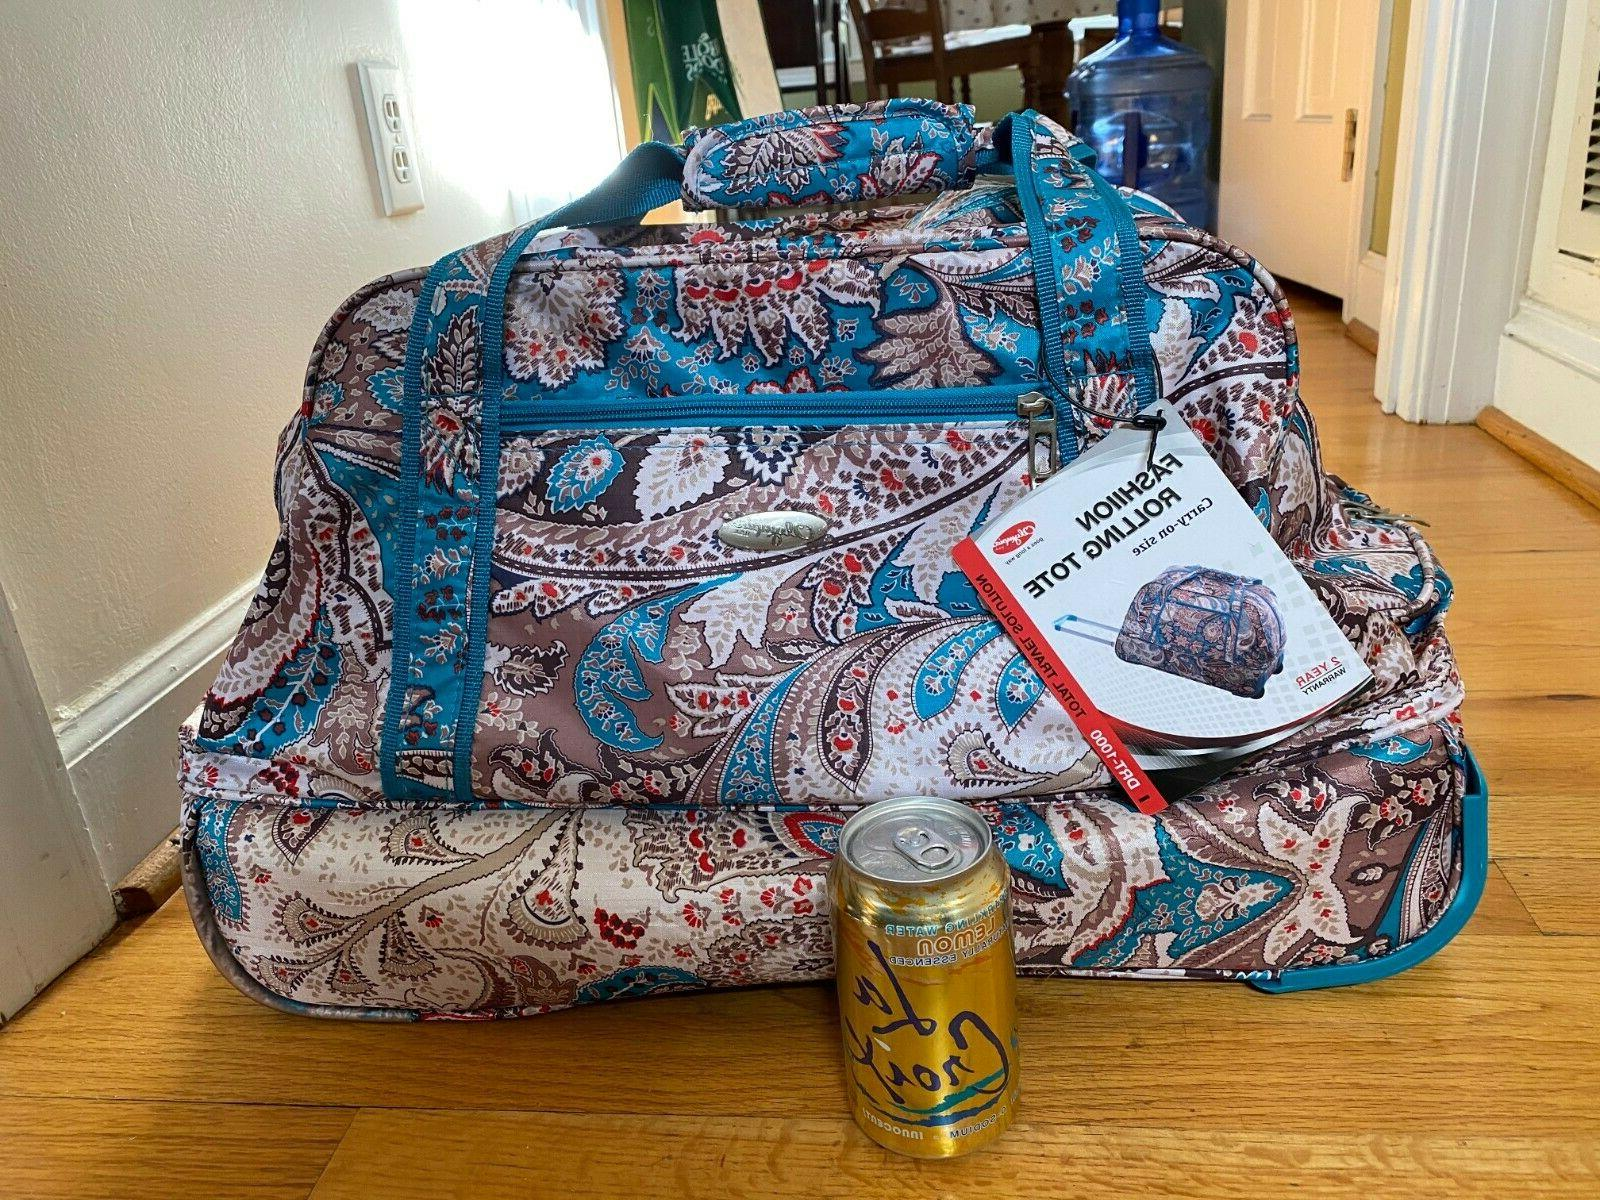 NWT Olympia On Size Tote Bag Luggage Paisley